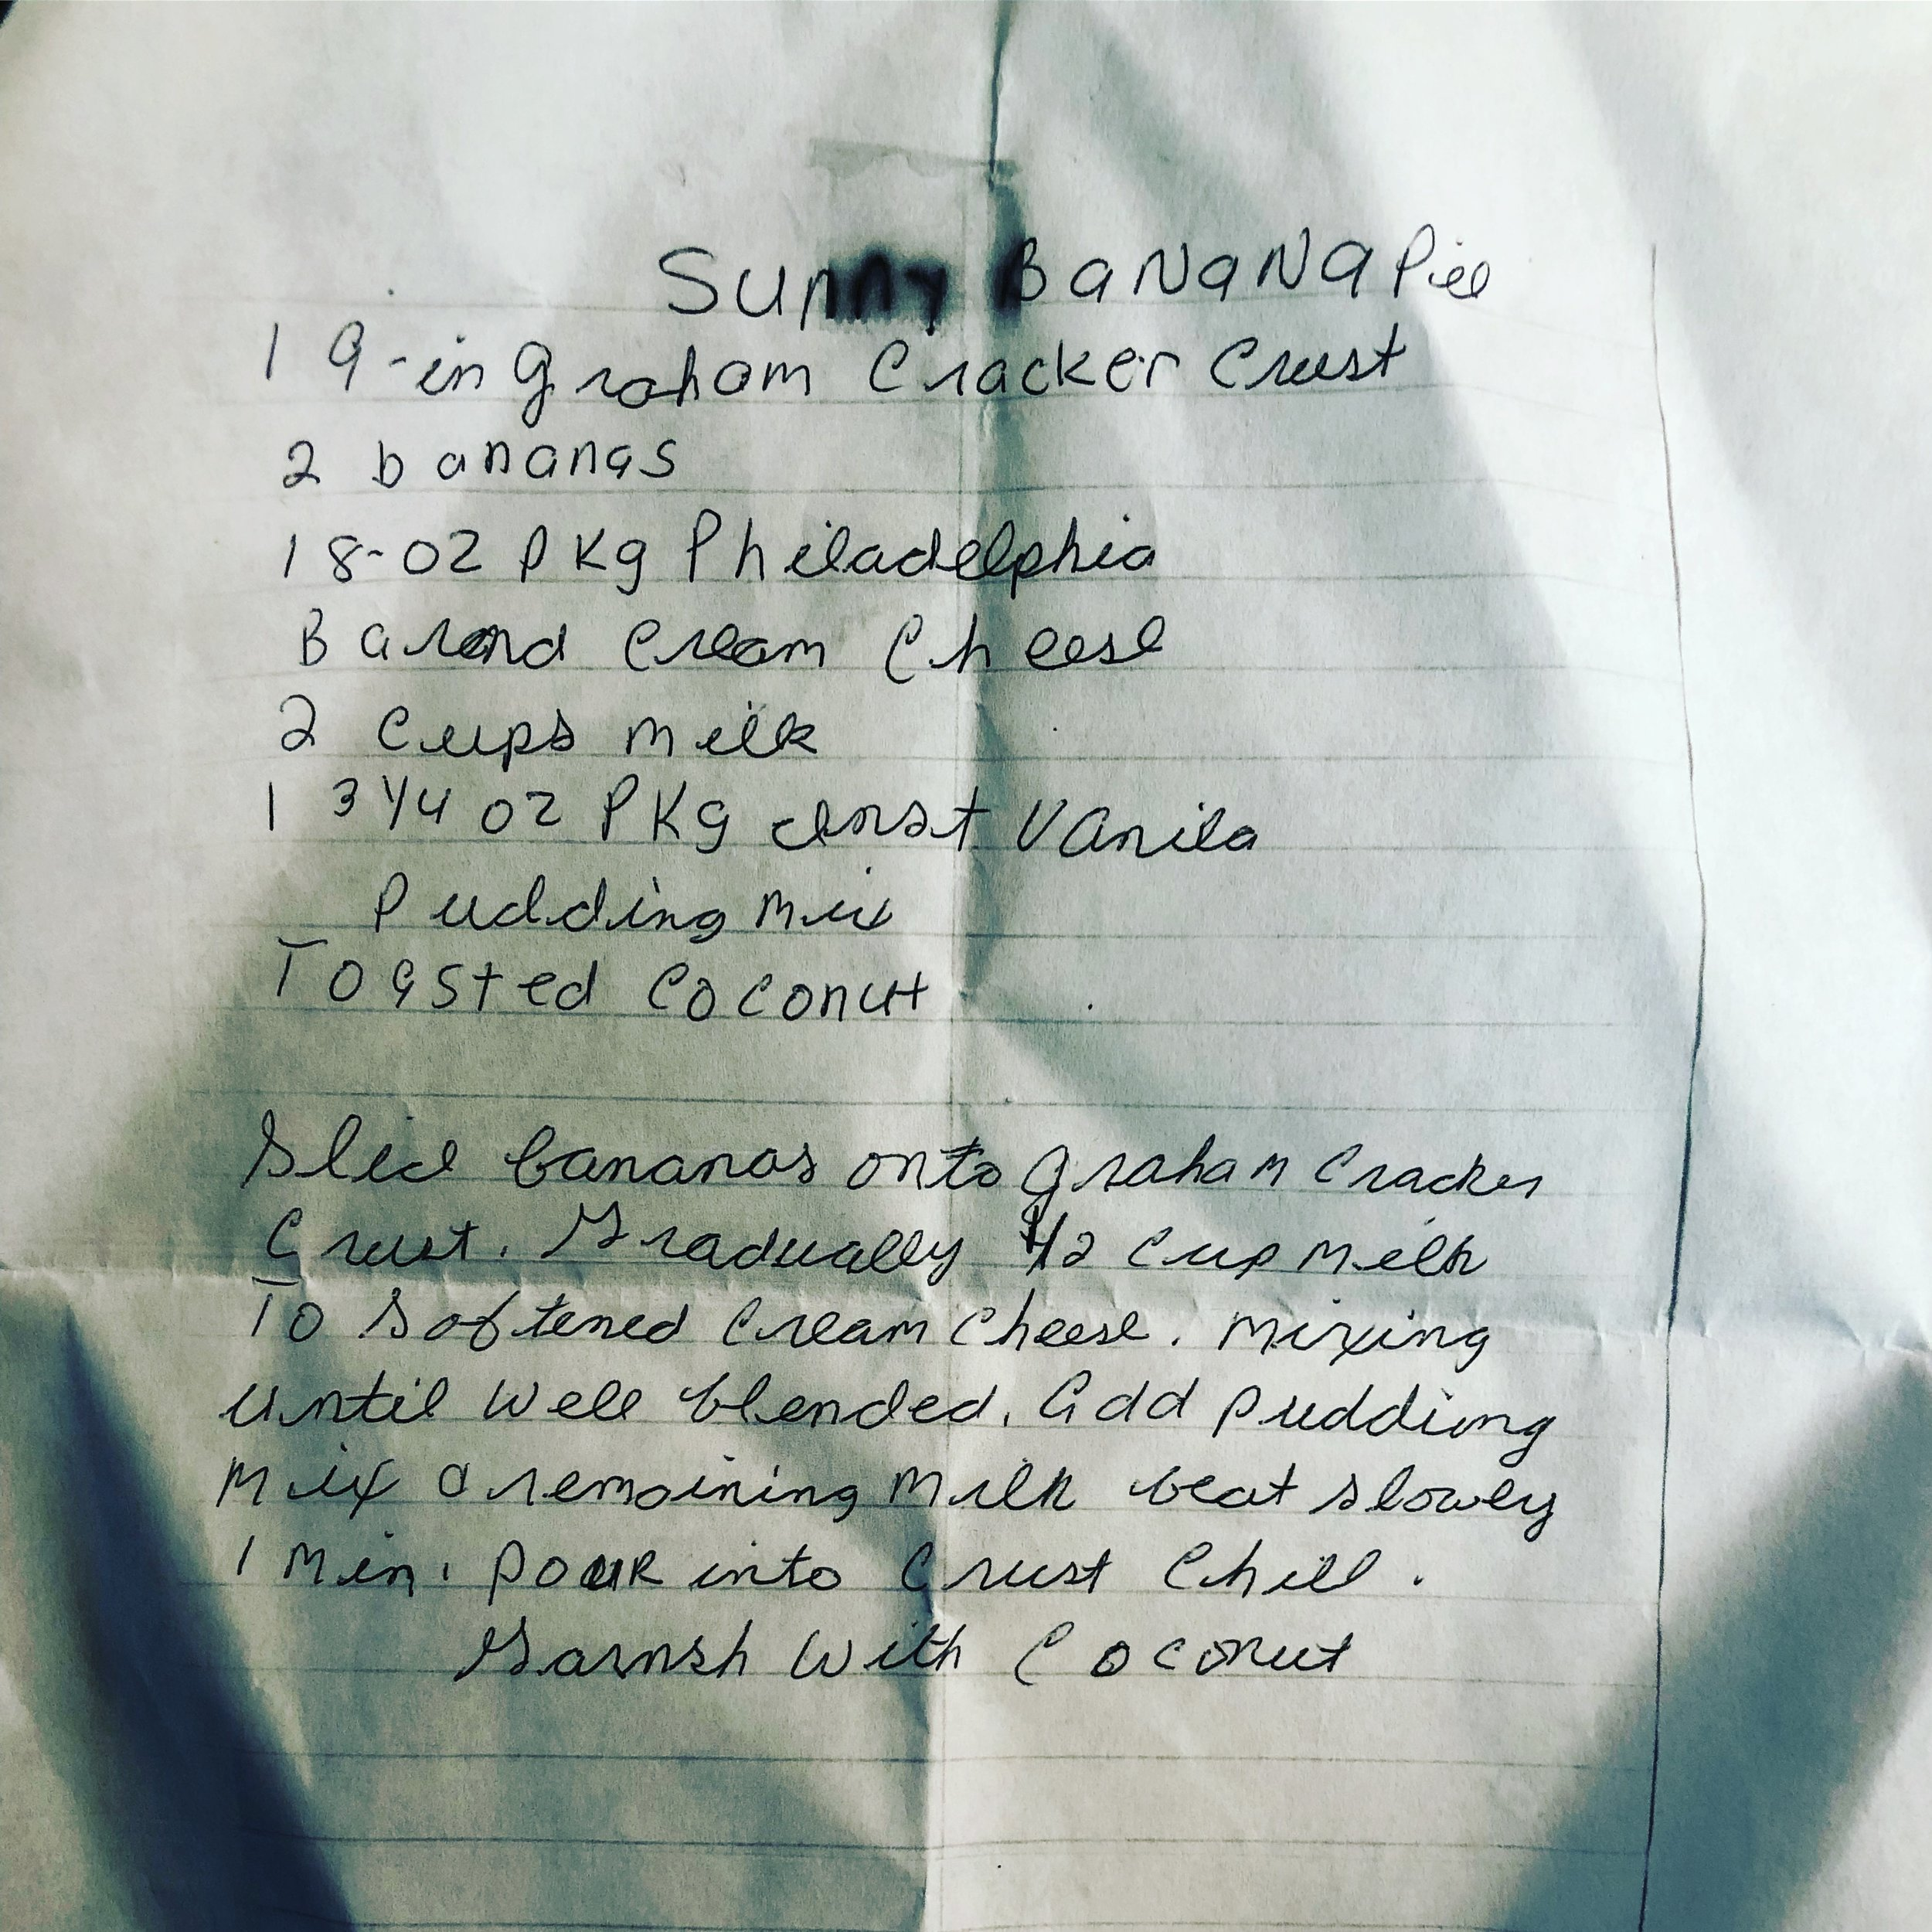 Beth's recipe from her purse.